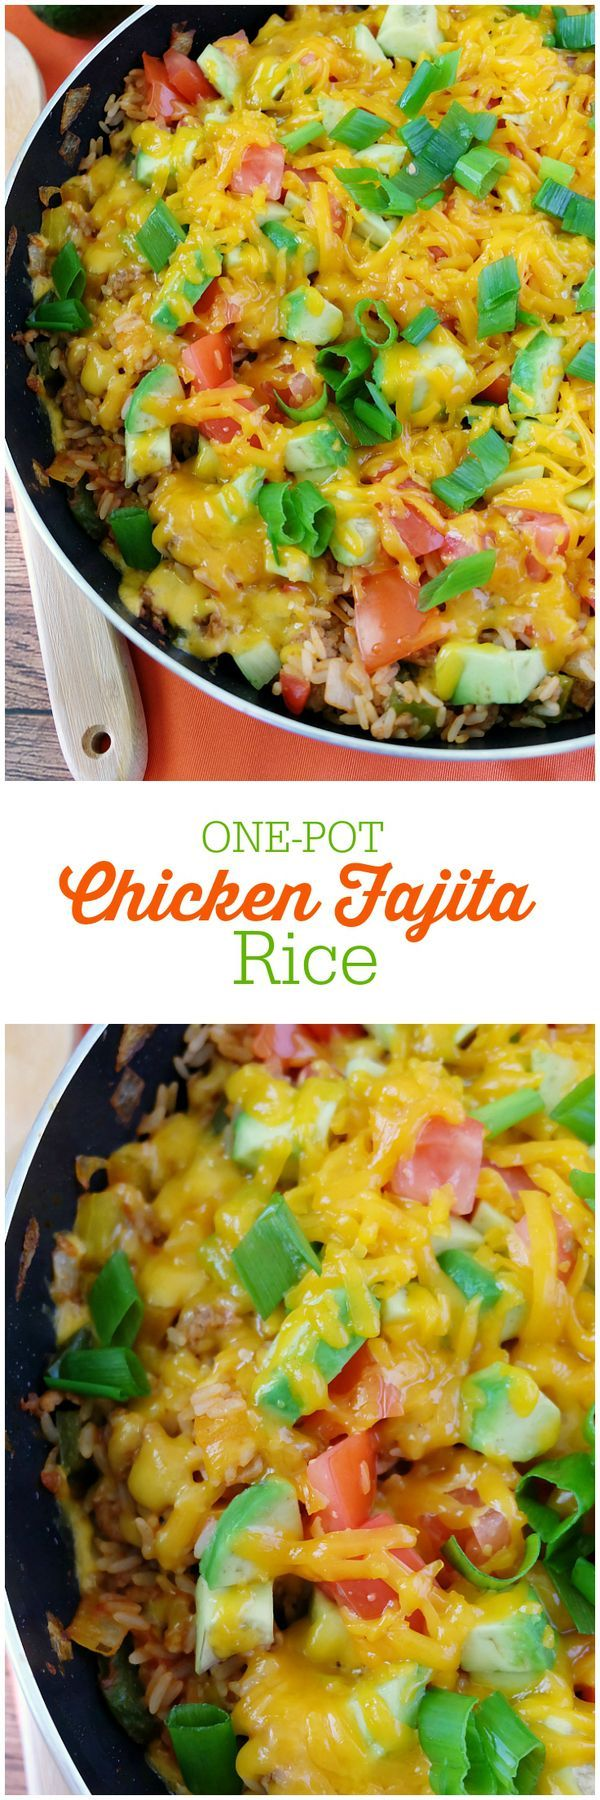 One-Pot Chicken Fajita Rice - Get kids cooking with this easy dinner recipe! It's filled with veggies, avocado, cheese, ground chicken and rice.